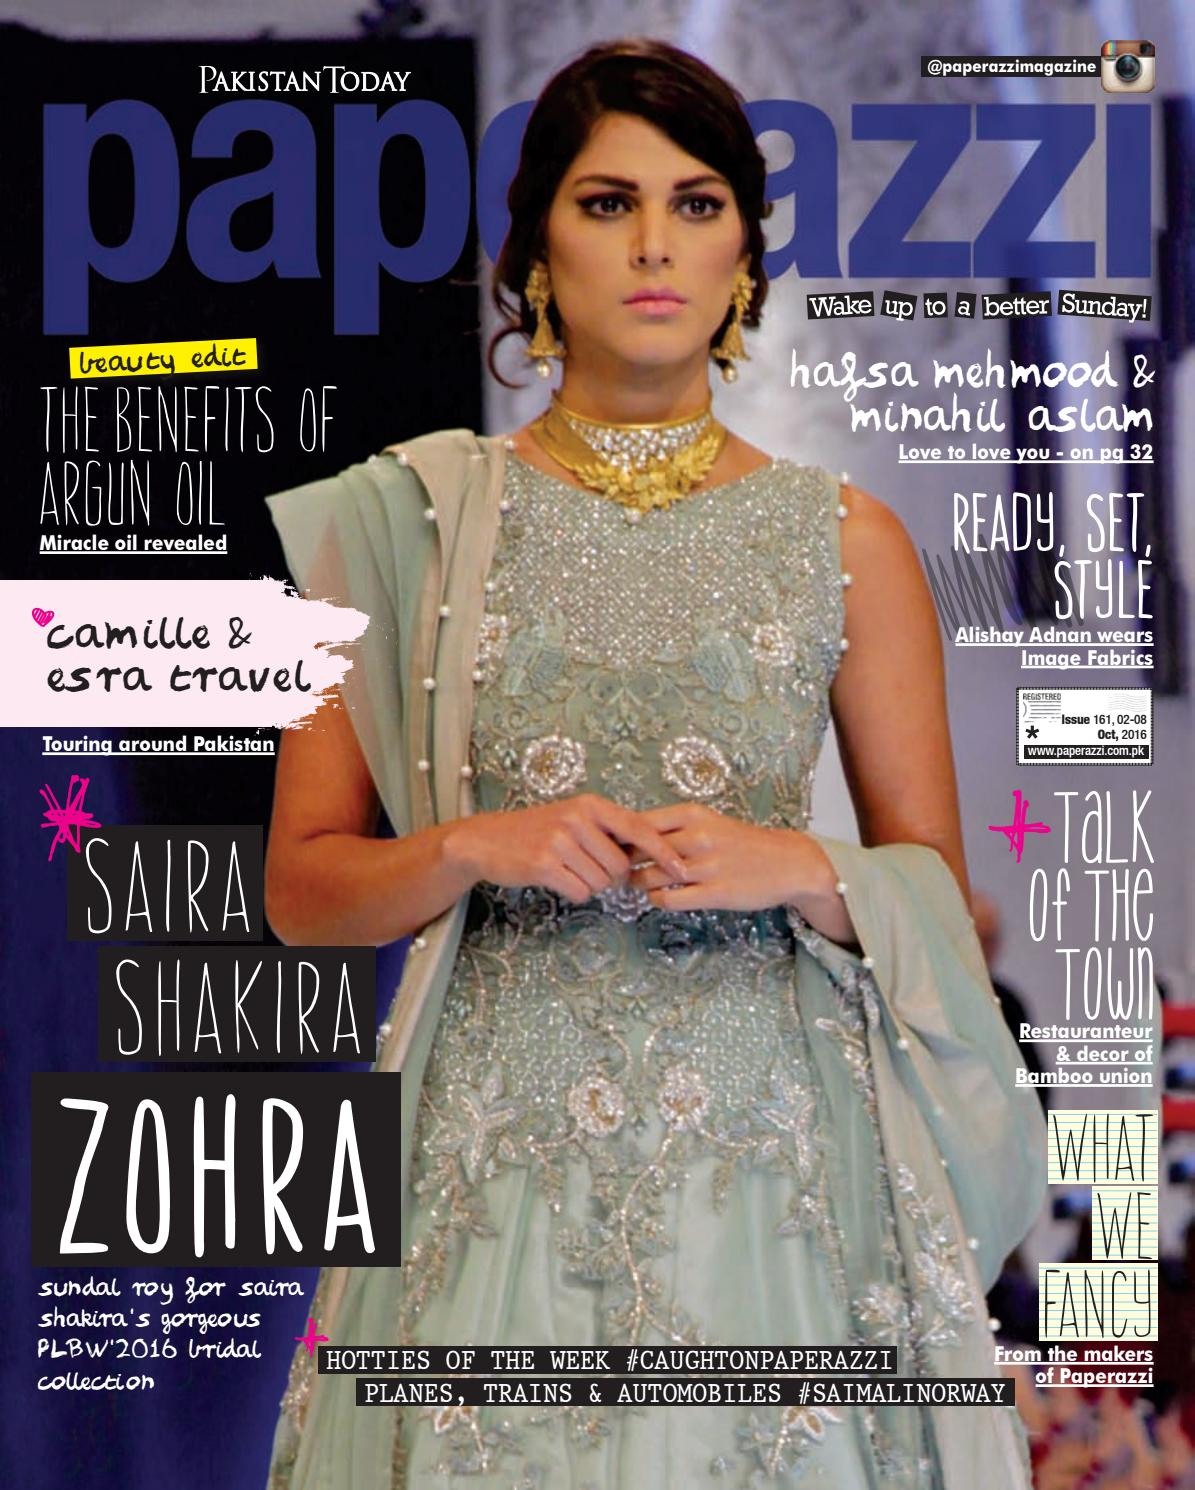 Pakistan Today Paperazzi Issue S 161 October 2nd 2016 By Pakistan Today Issuu